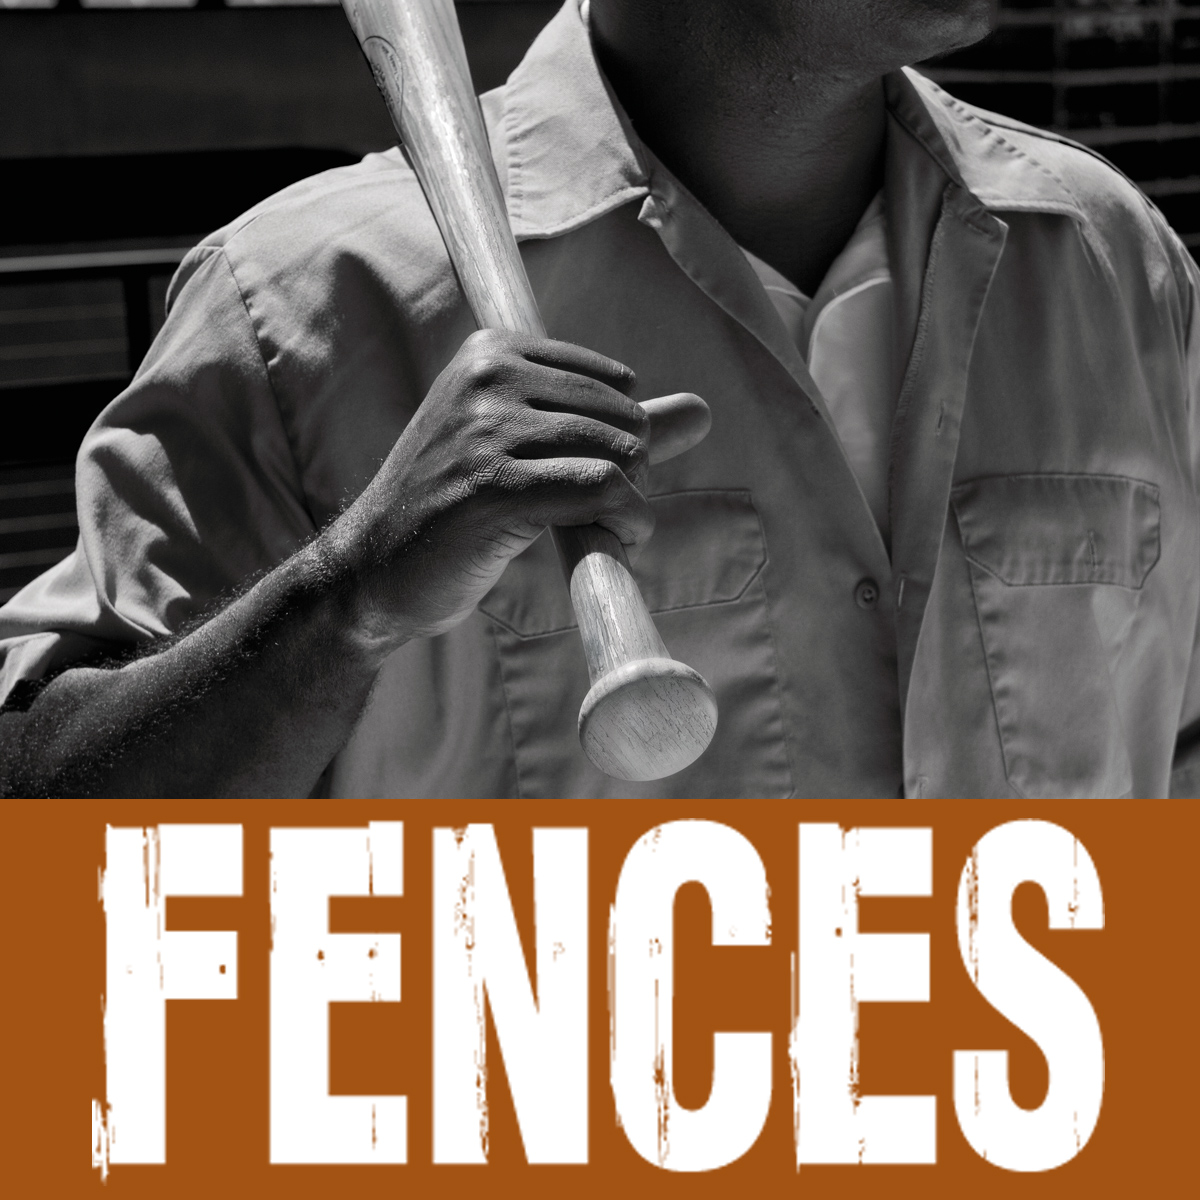 fences a powerful work by wilson at the denver theatre advertisements